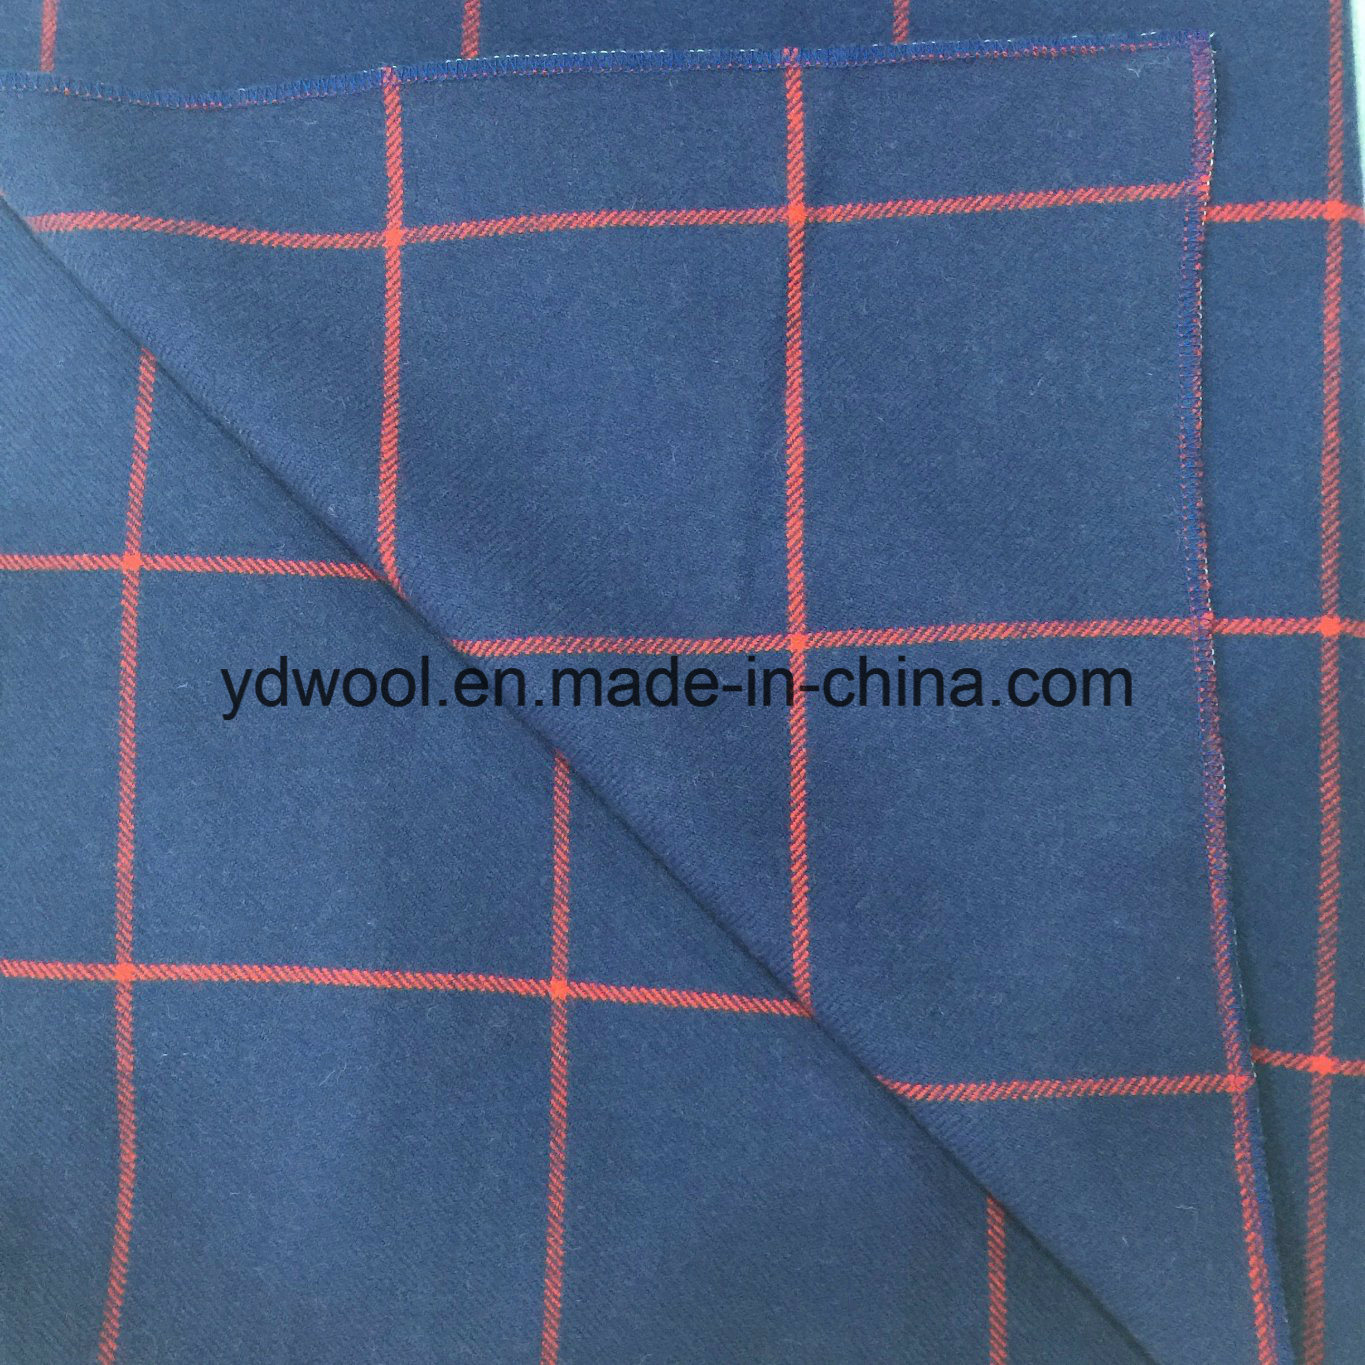 Twill Check Wool Fabric for Overcoat